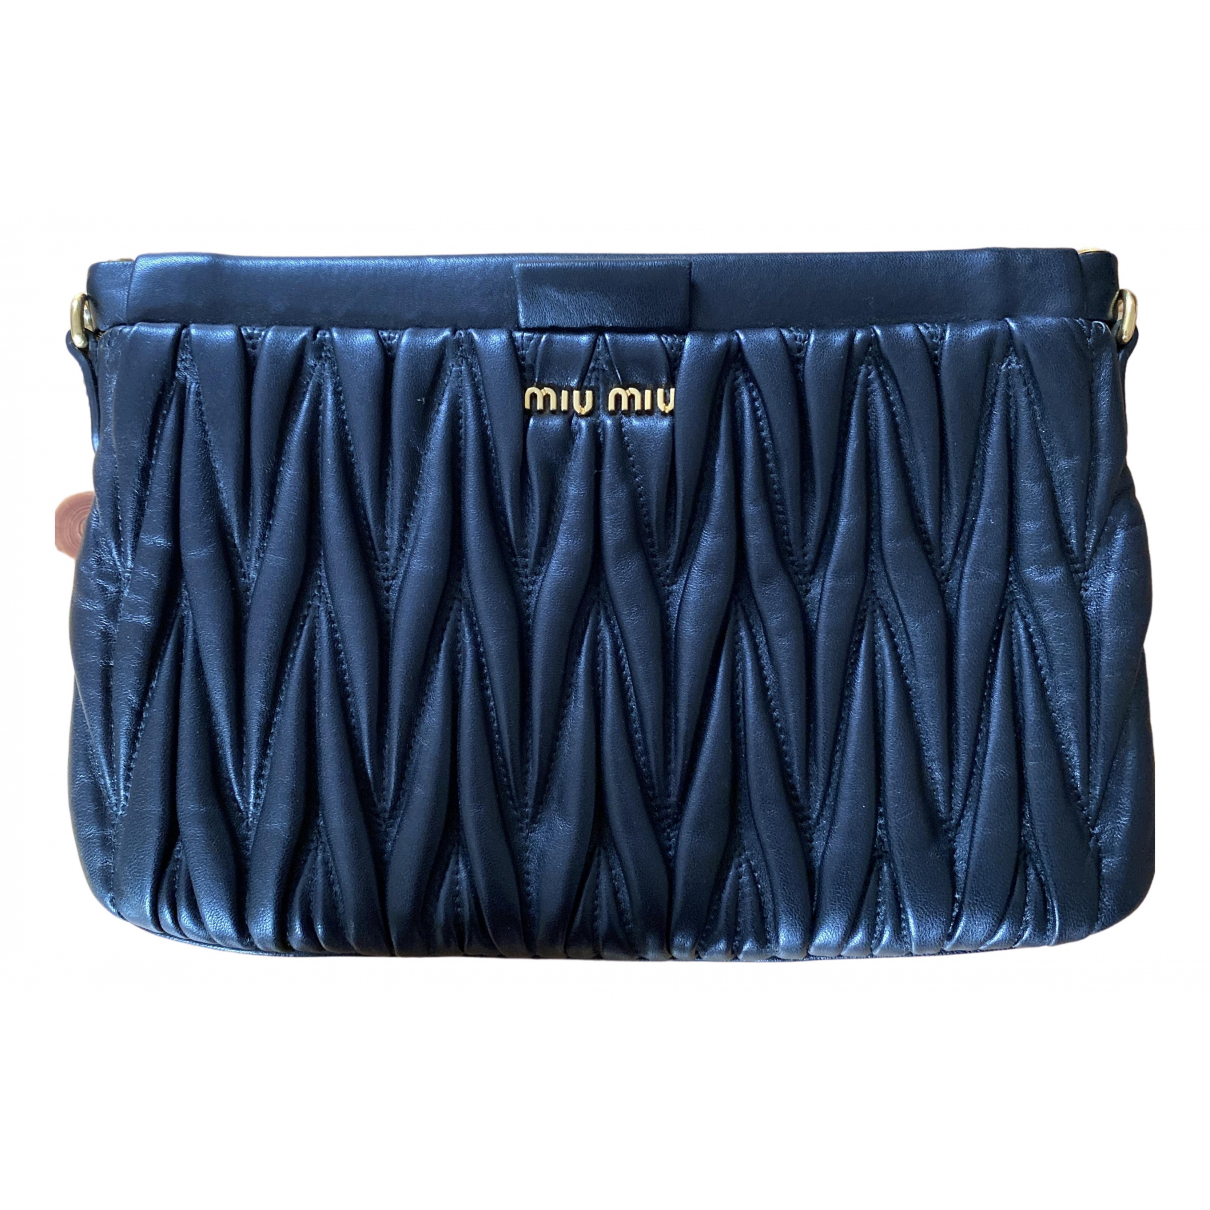 Miu Miu Matelassé Black Leather Clutch bag for Women \N